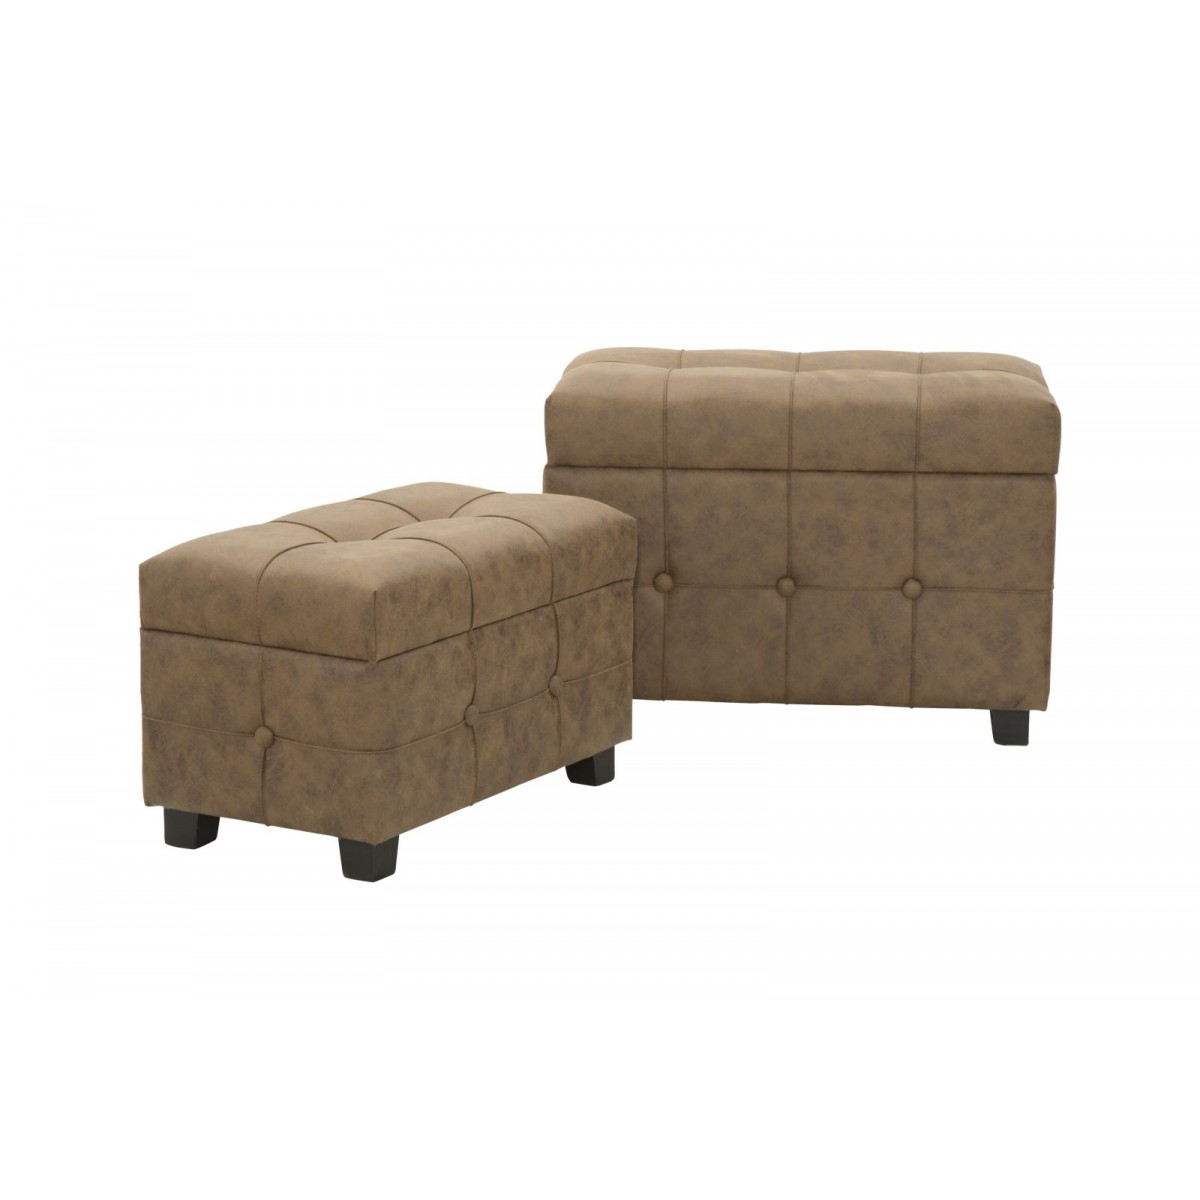 Panca Contenitore Ecopelle Set Due Panche Pouf Contenitore Stile Vintage In Ecopelle